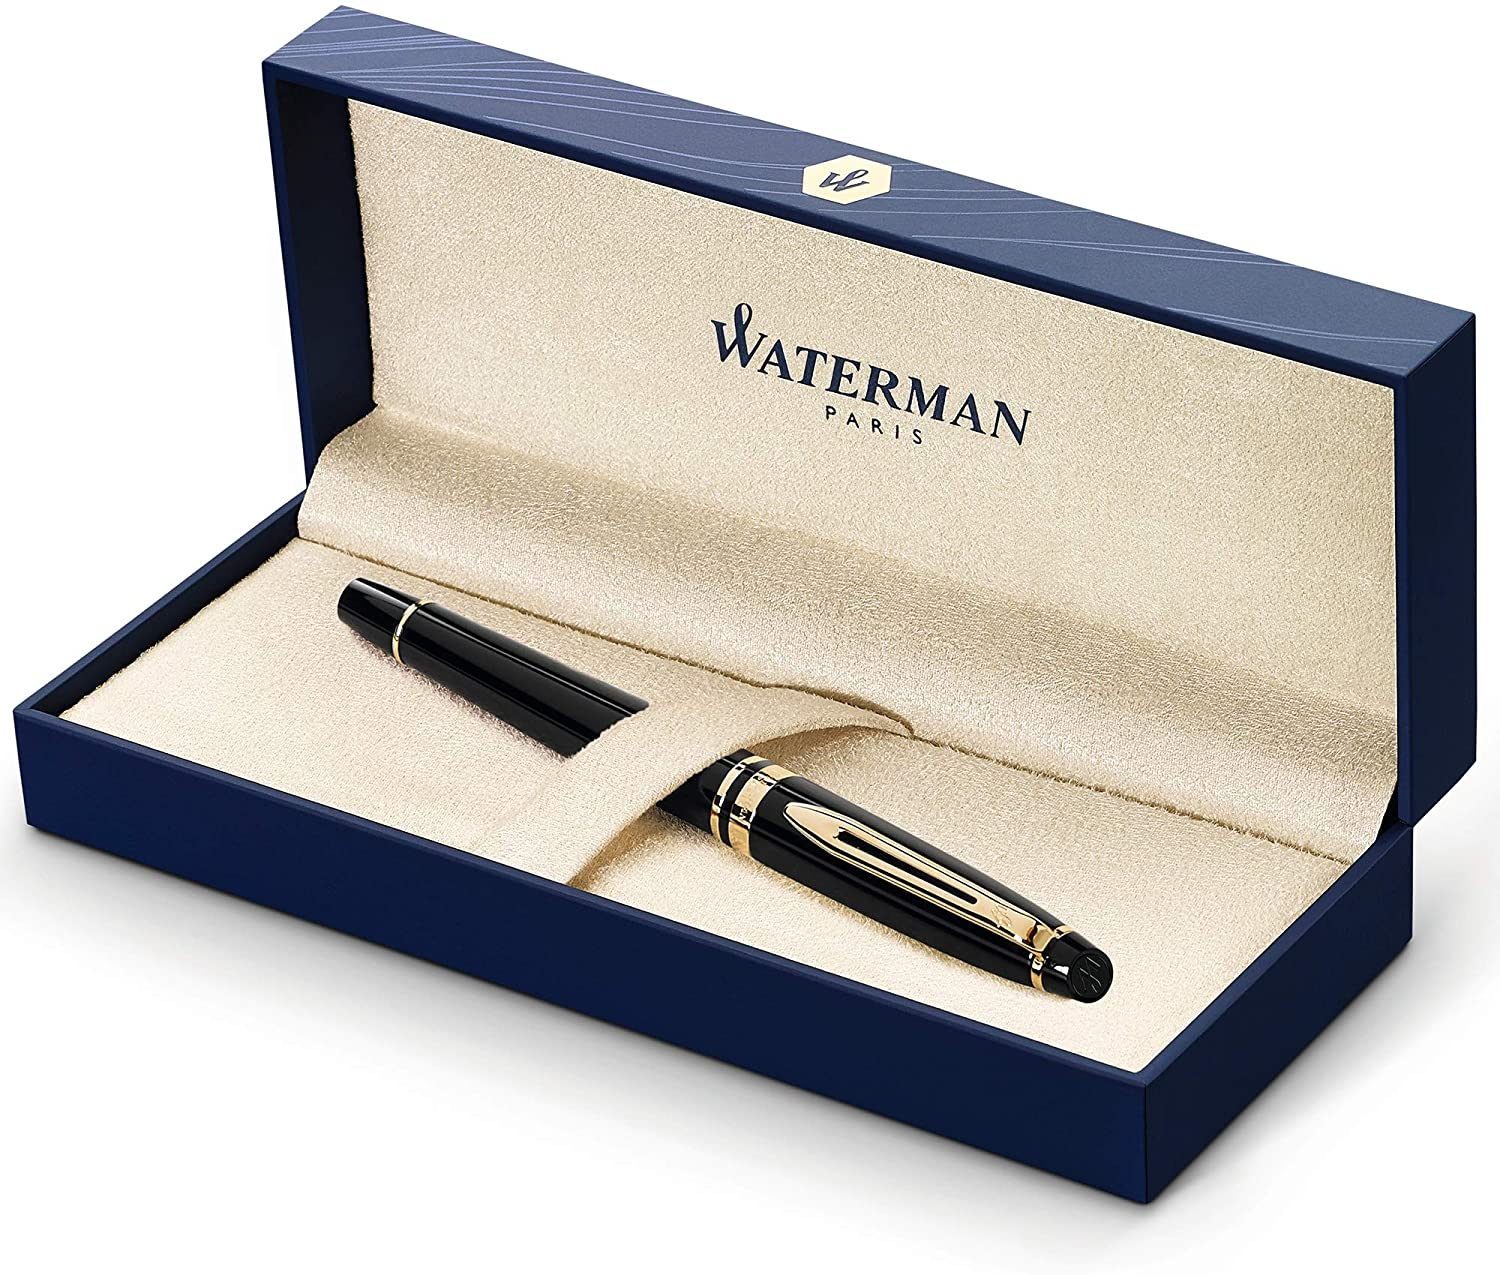 Waterman Expert Rollerball Pen, Gloss Black with 23k Gold Trim, Fine Point with Black Ink Cartridge